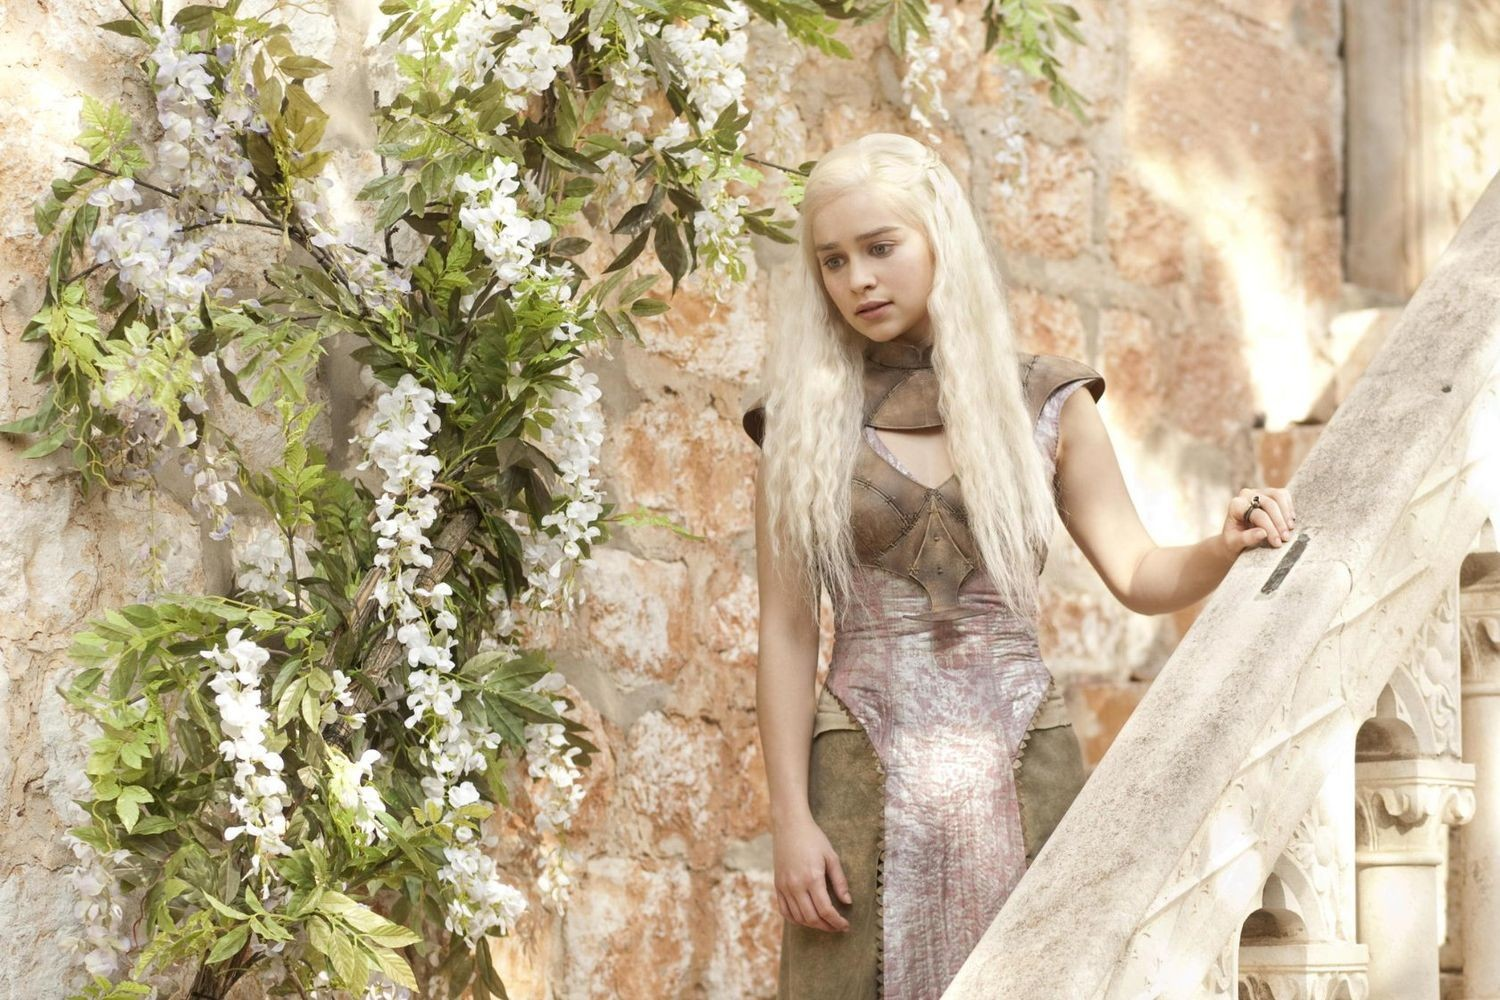 beautiful emilia clarke amazing stylish pose look with background white trees hd mobile free desktop wallpaper